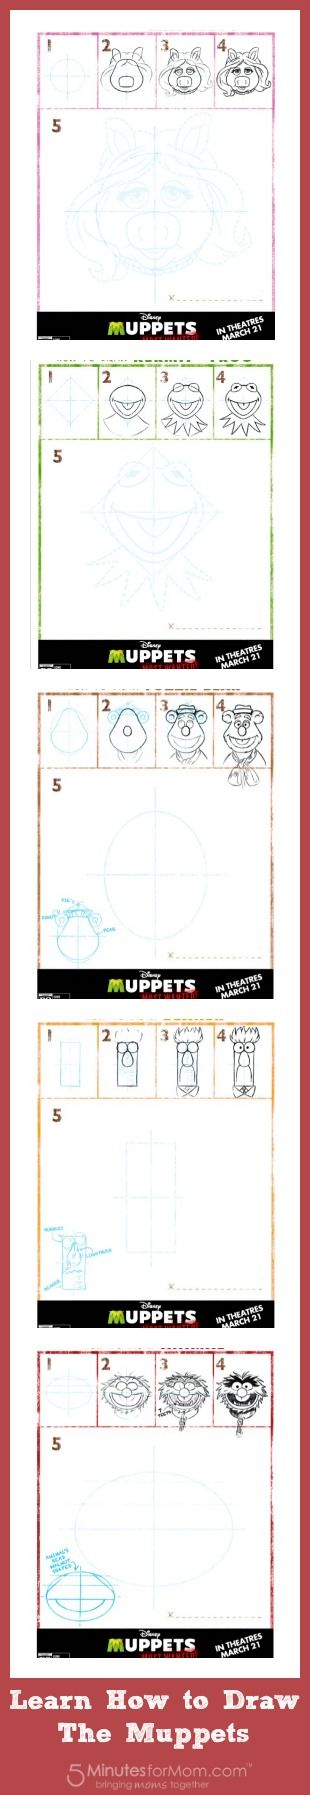 Muppets Most Wanted Activity Sheet - Learn How To Draw The Muppets  #MuppetsMostWanted